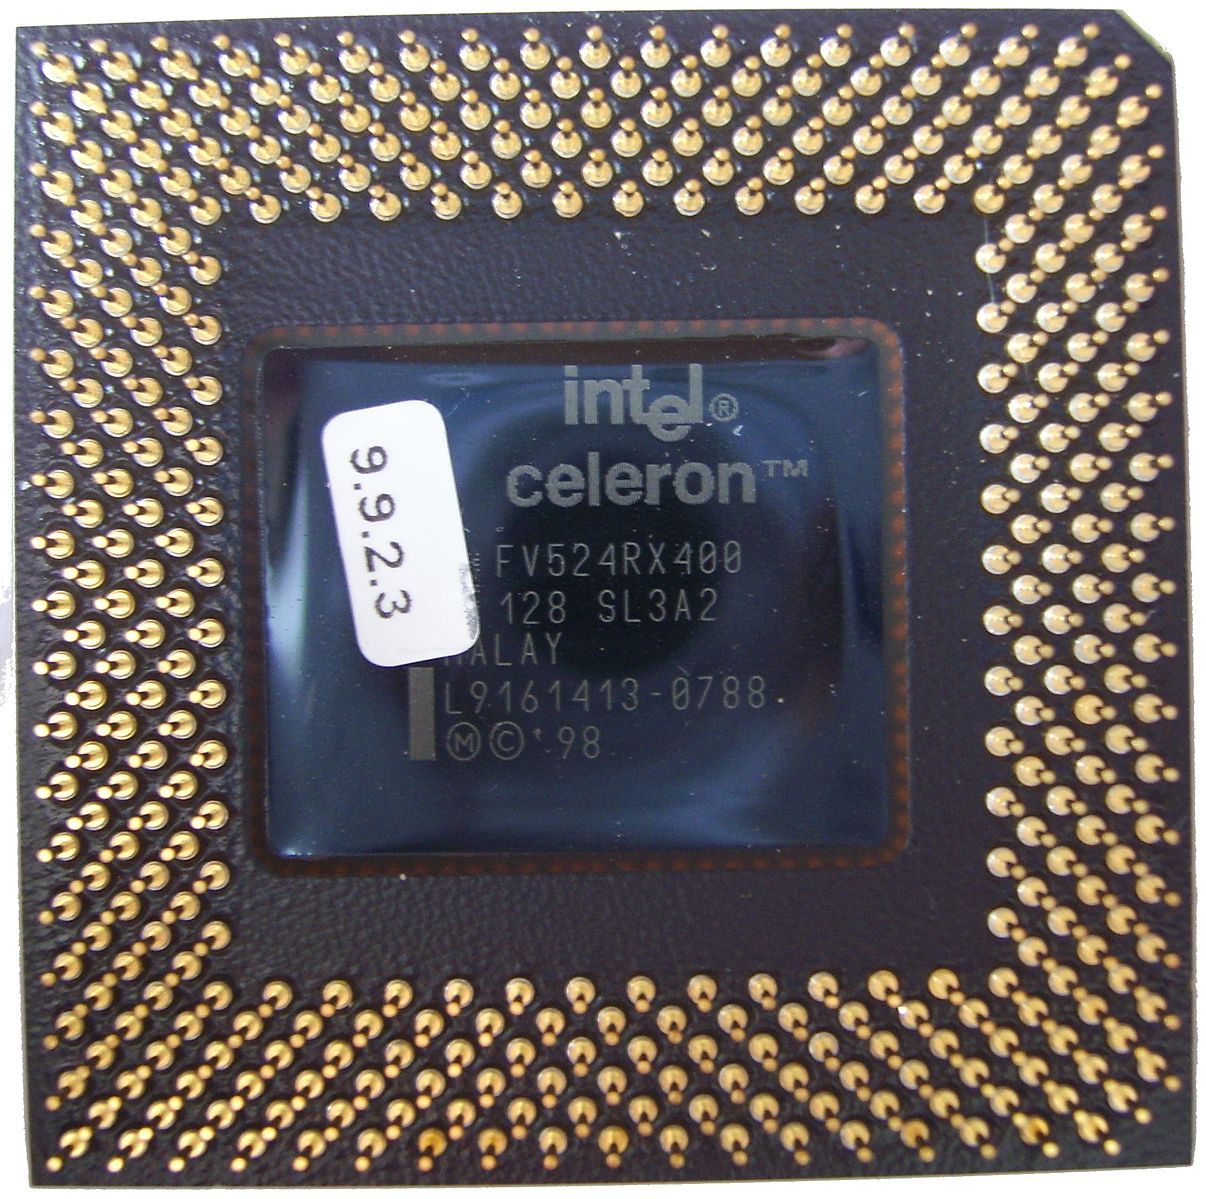 Difference Between Pentium and Celeron